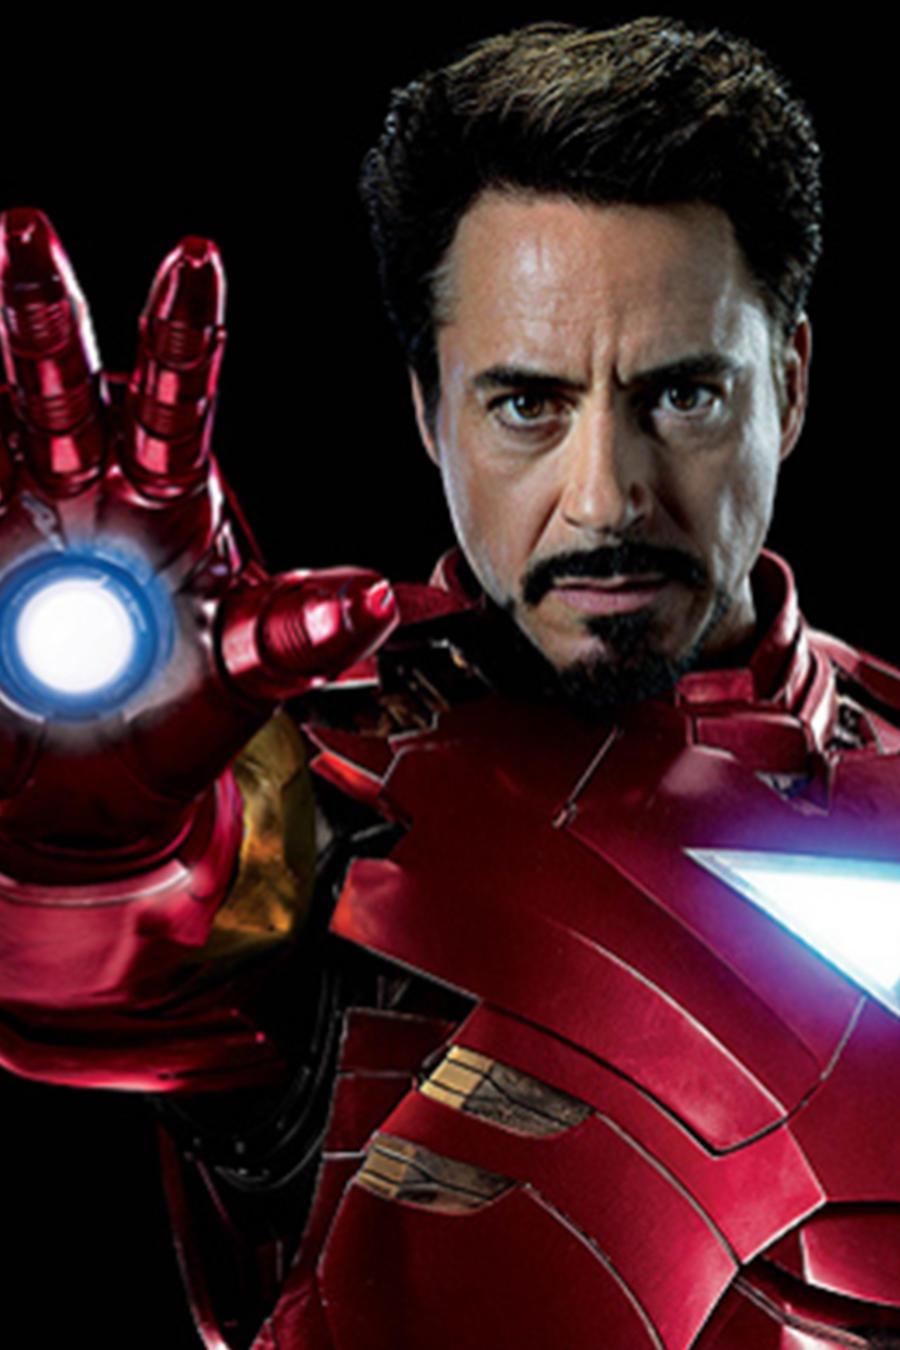 Conoce al doble mexicano de Robert Downey Jr., Braulio Ledezma